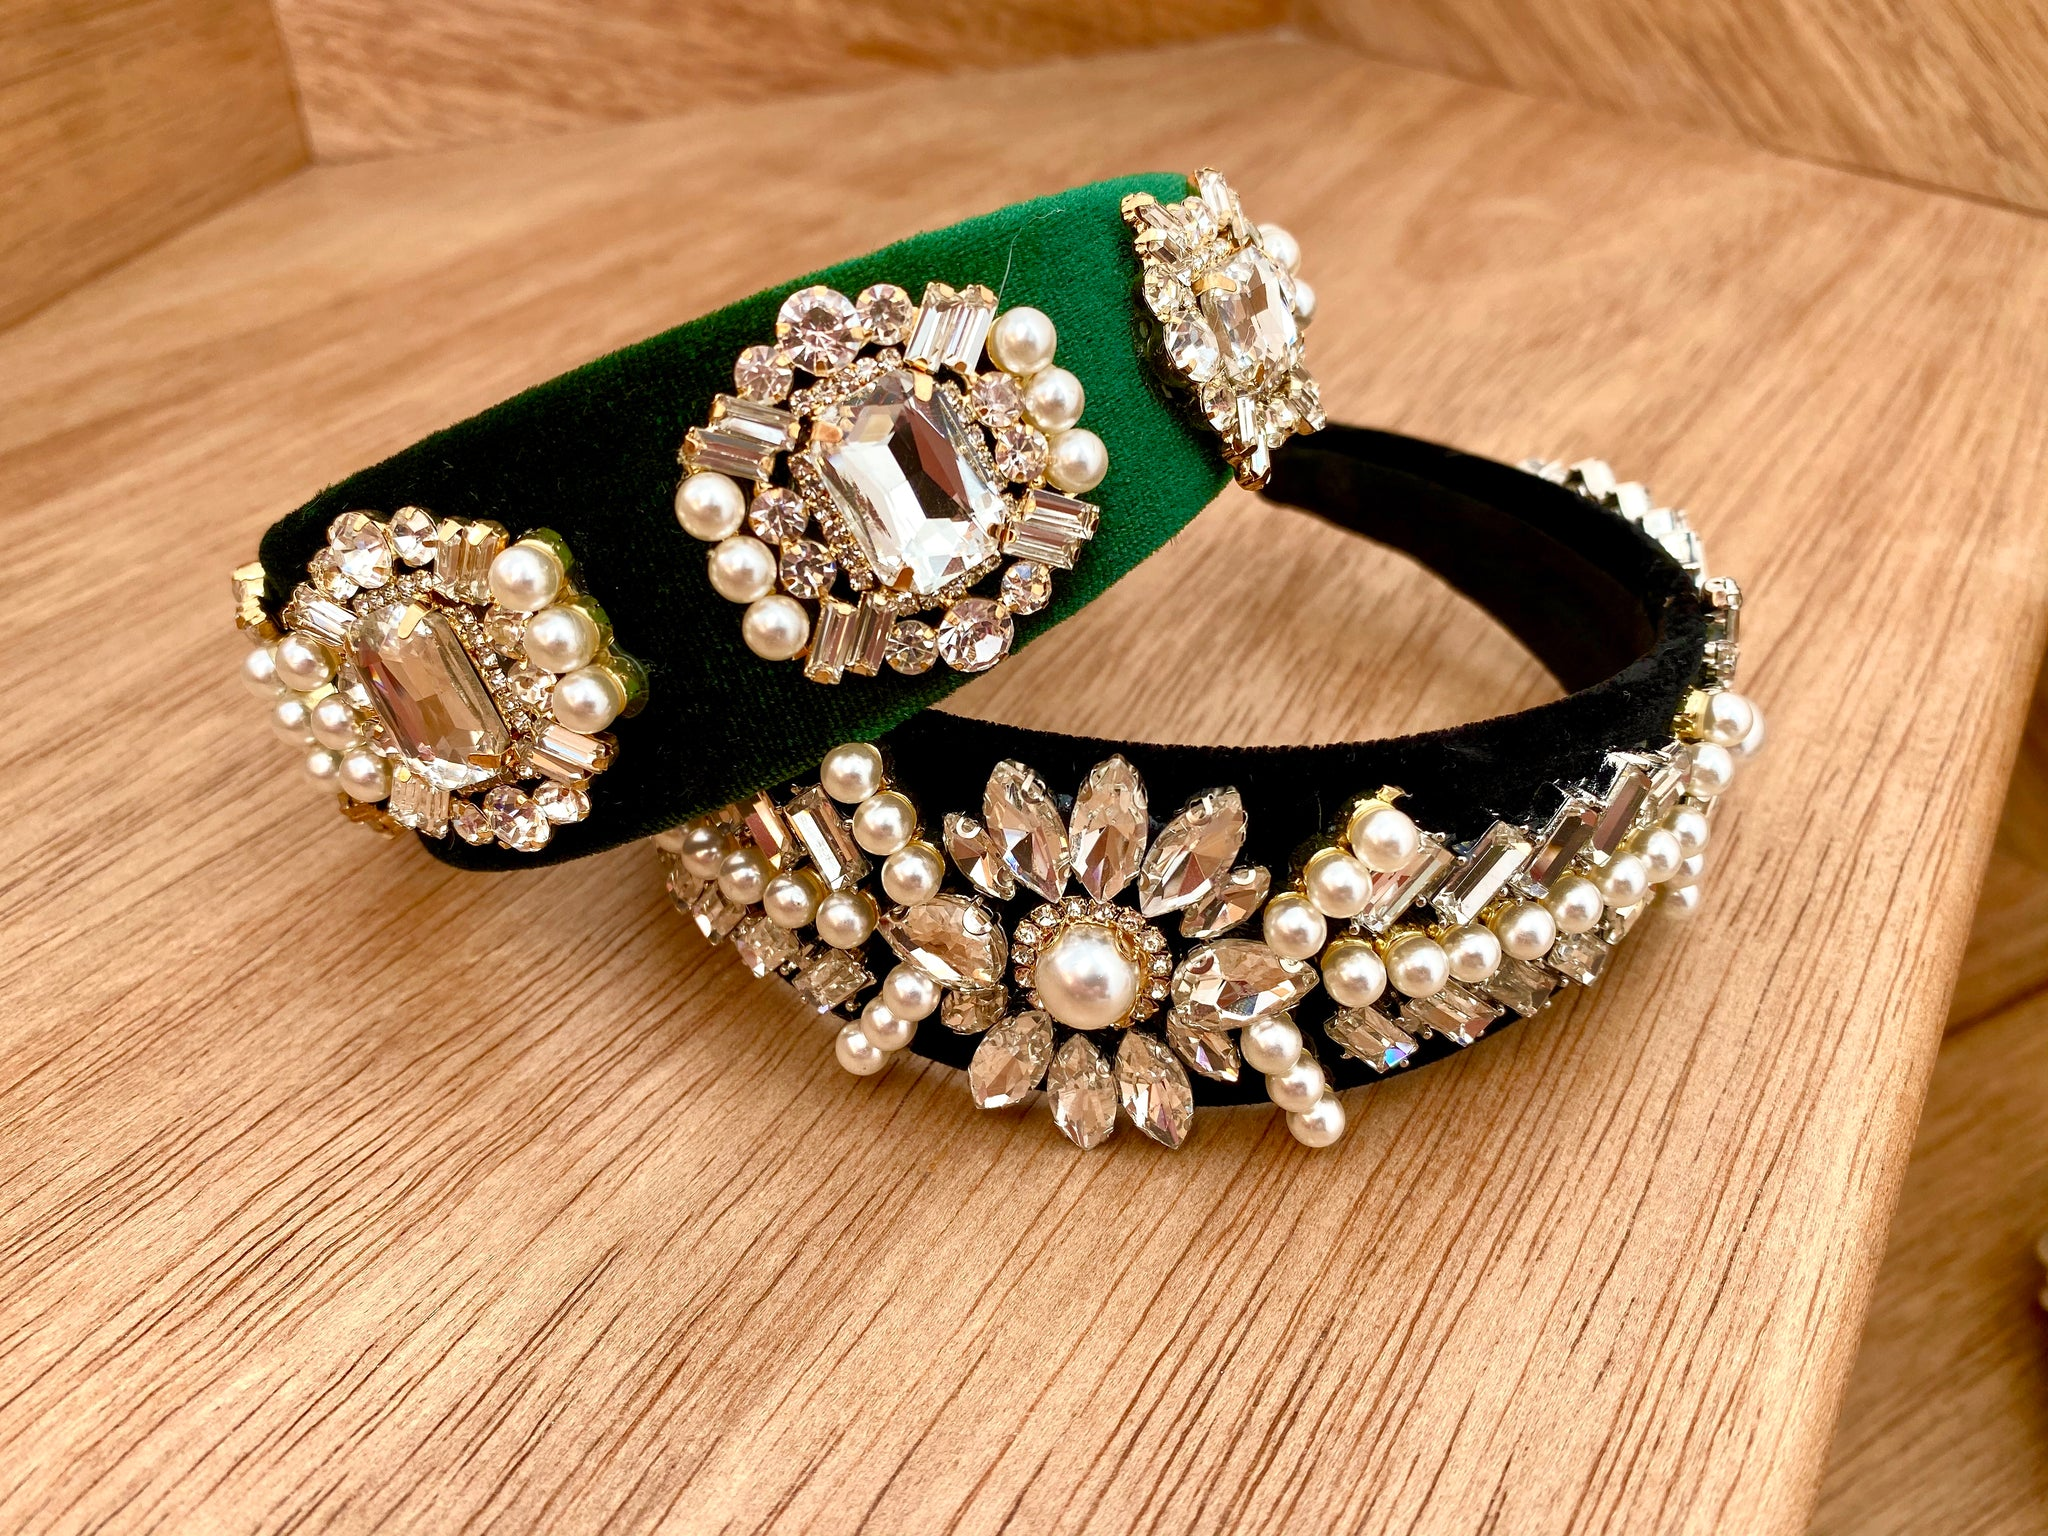 THE REGAL HEADBAND - DEEP EMERALD